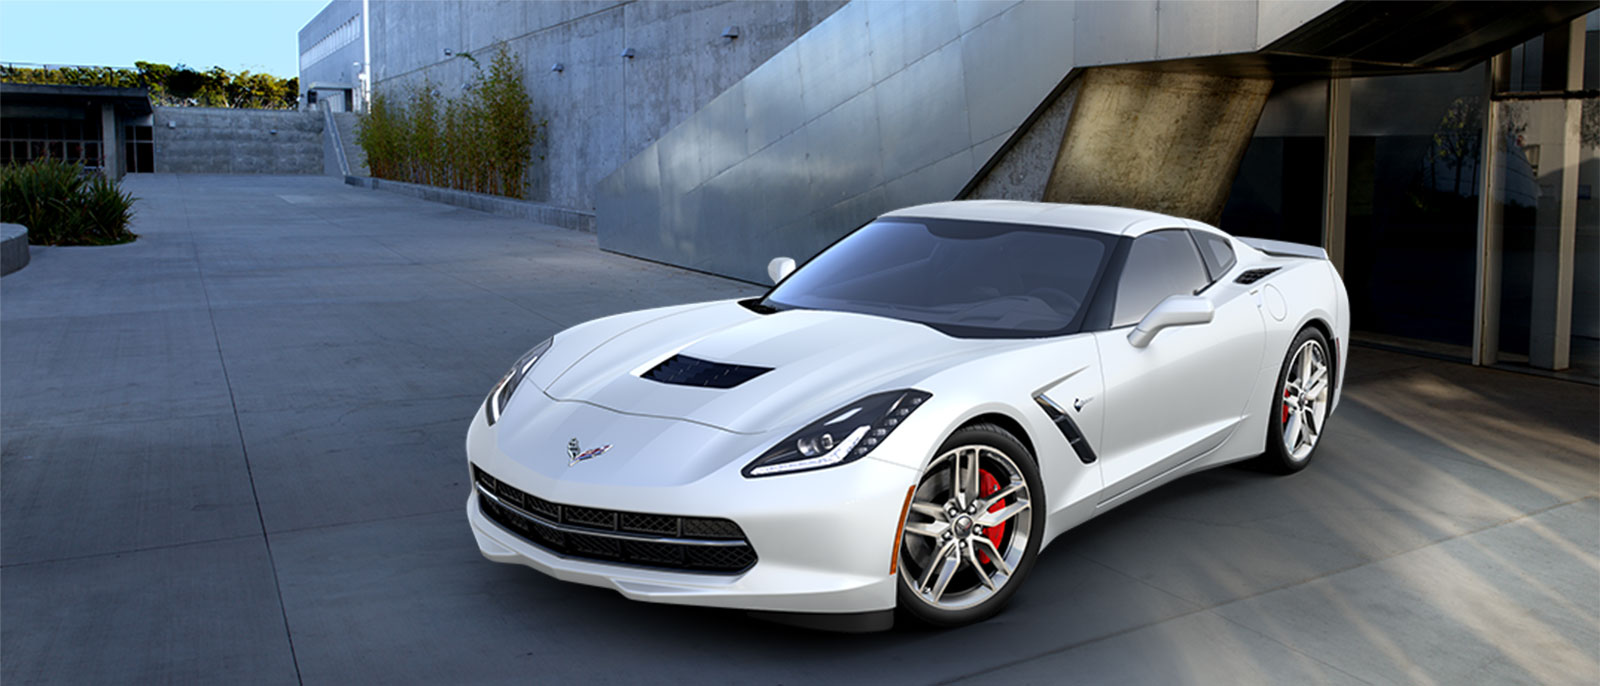 2015 chevy corvette stingray z51 cox chevy. Black Bedroom Furniture Sets. Home Design Ideas